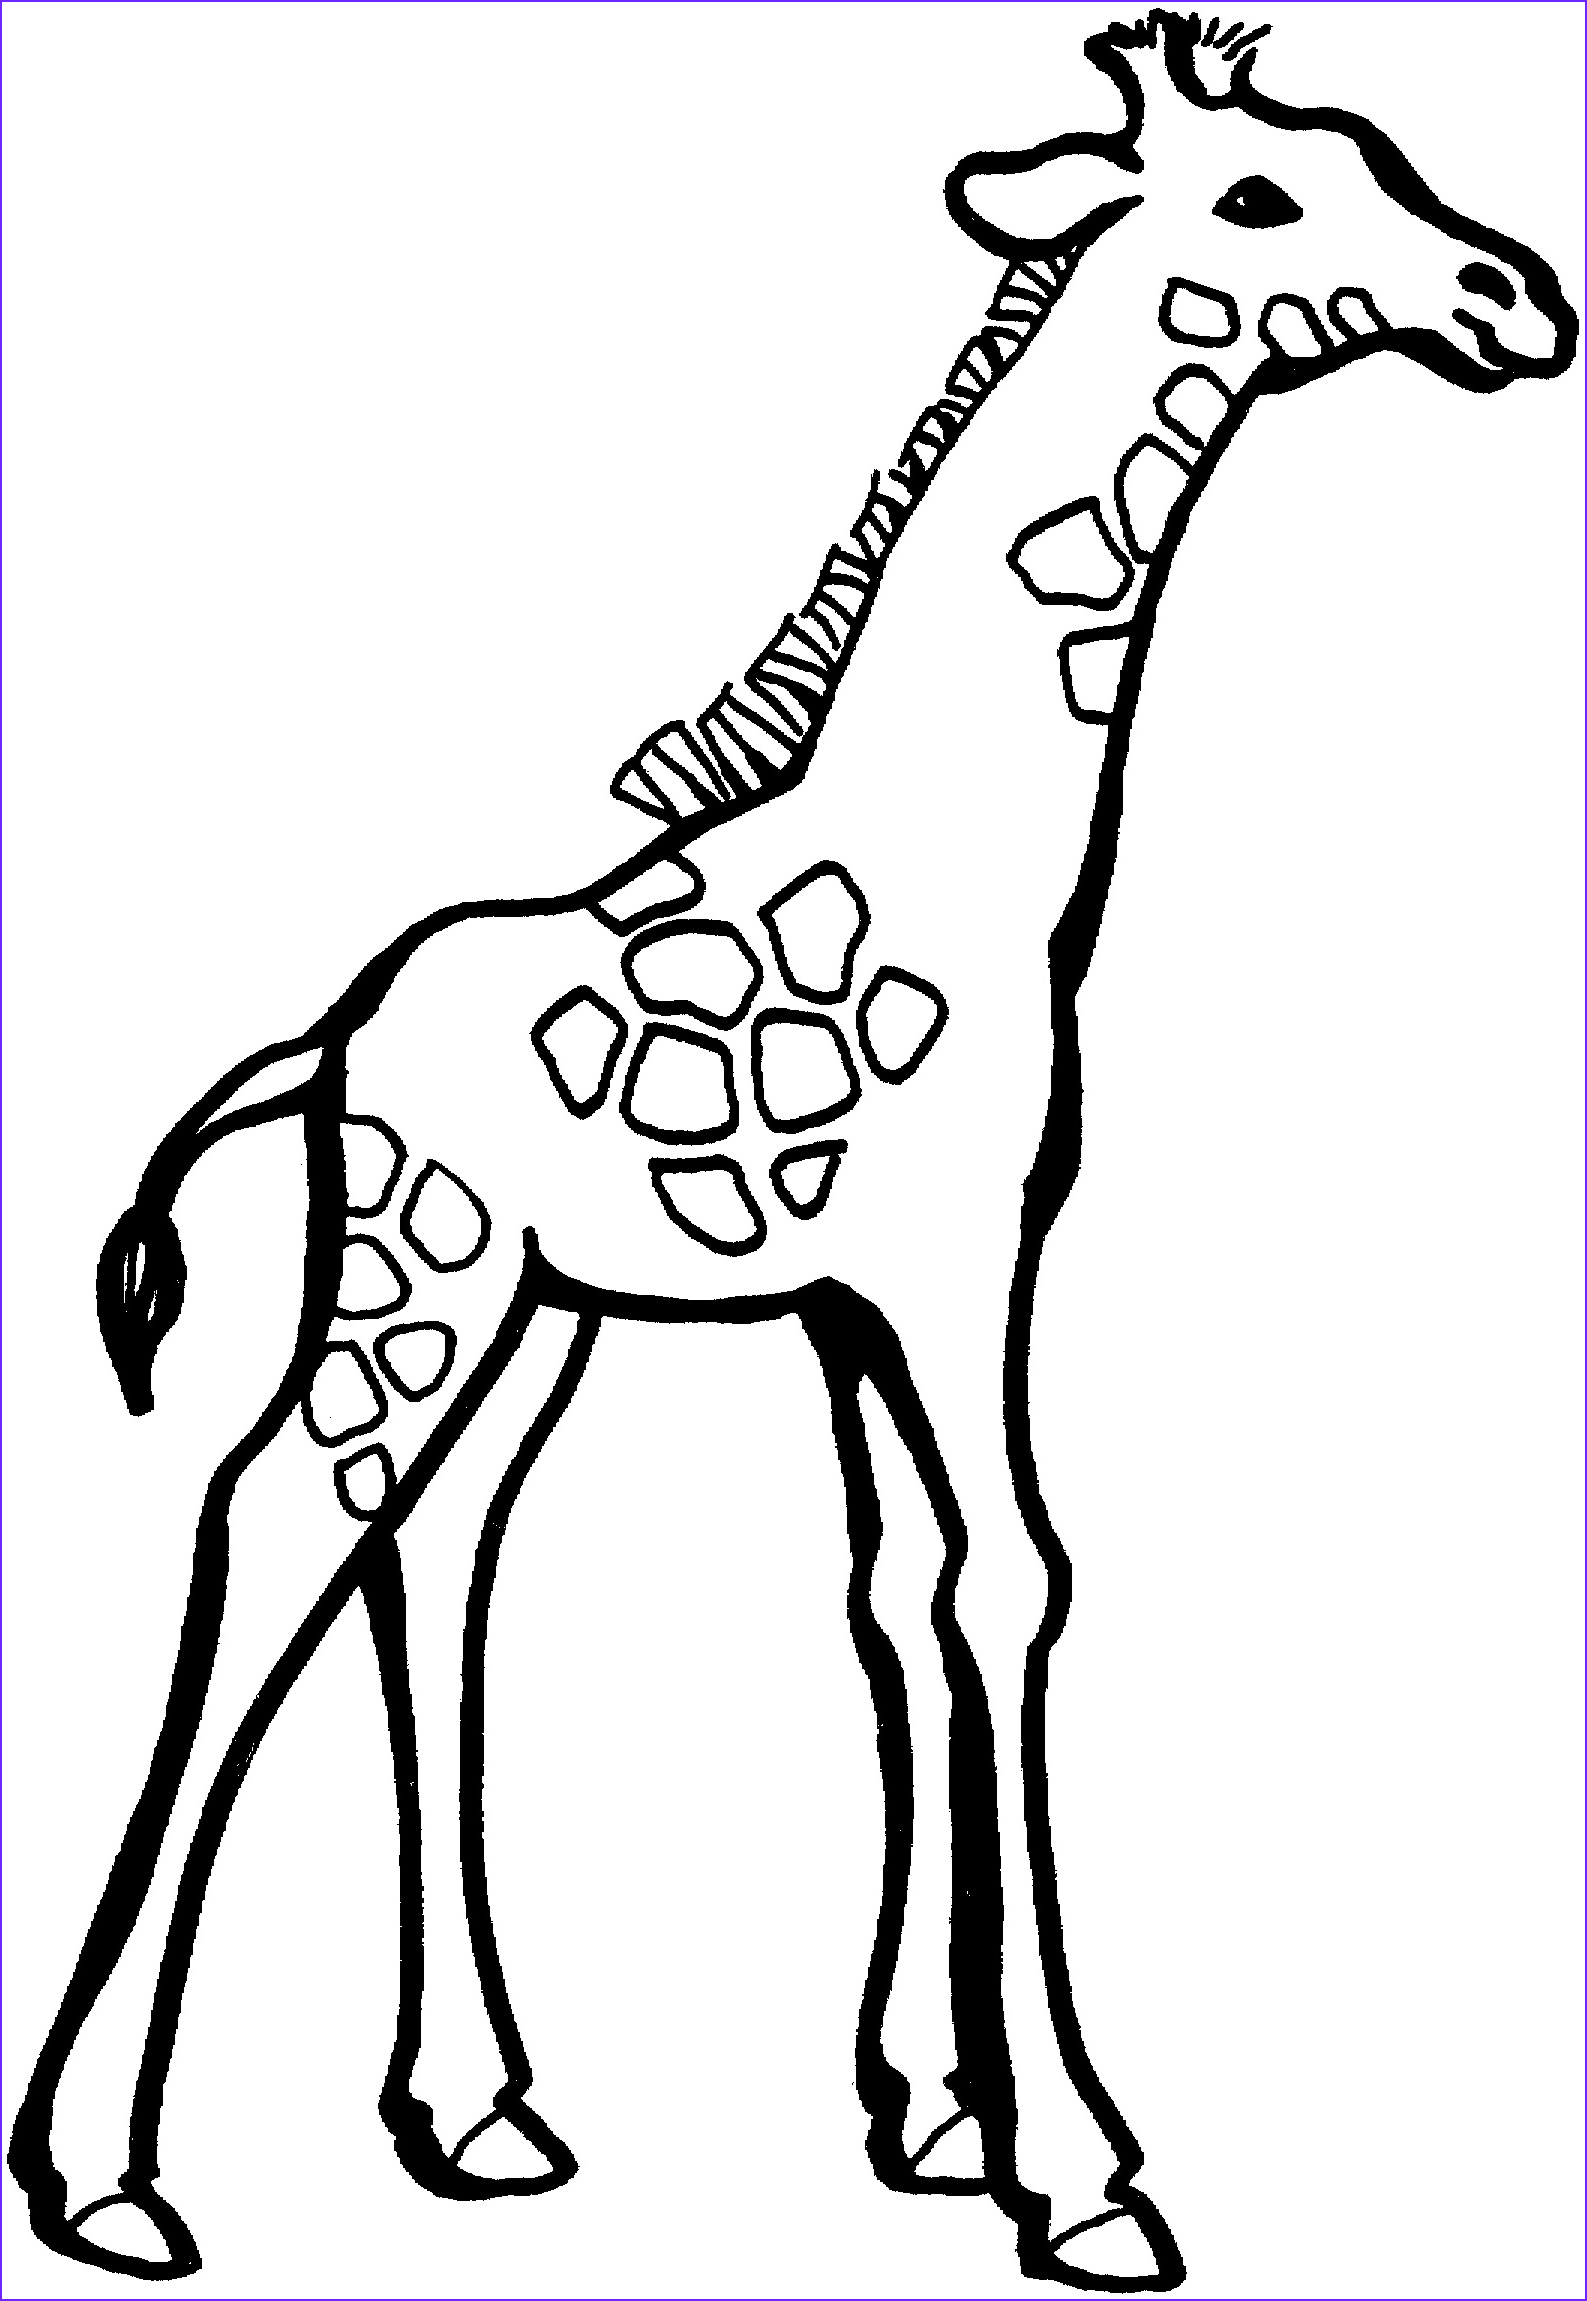 Giraffes Coloring Pages Best Of Gallery Free Printable Giraffe Coloring Pages for Kids